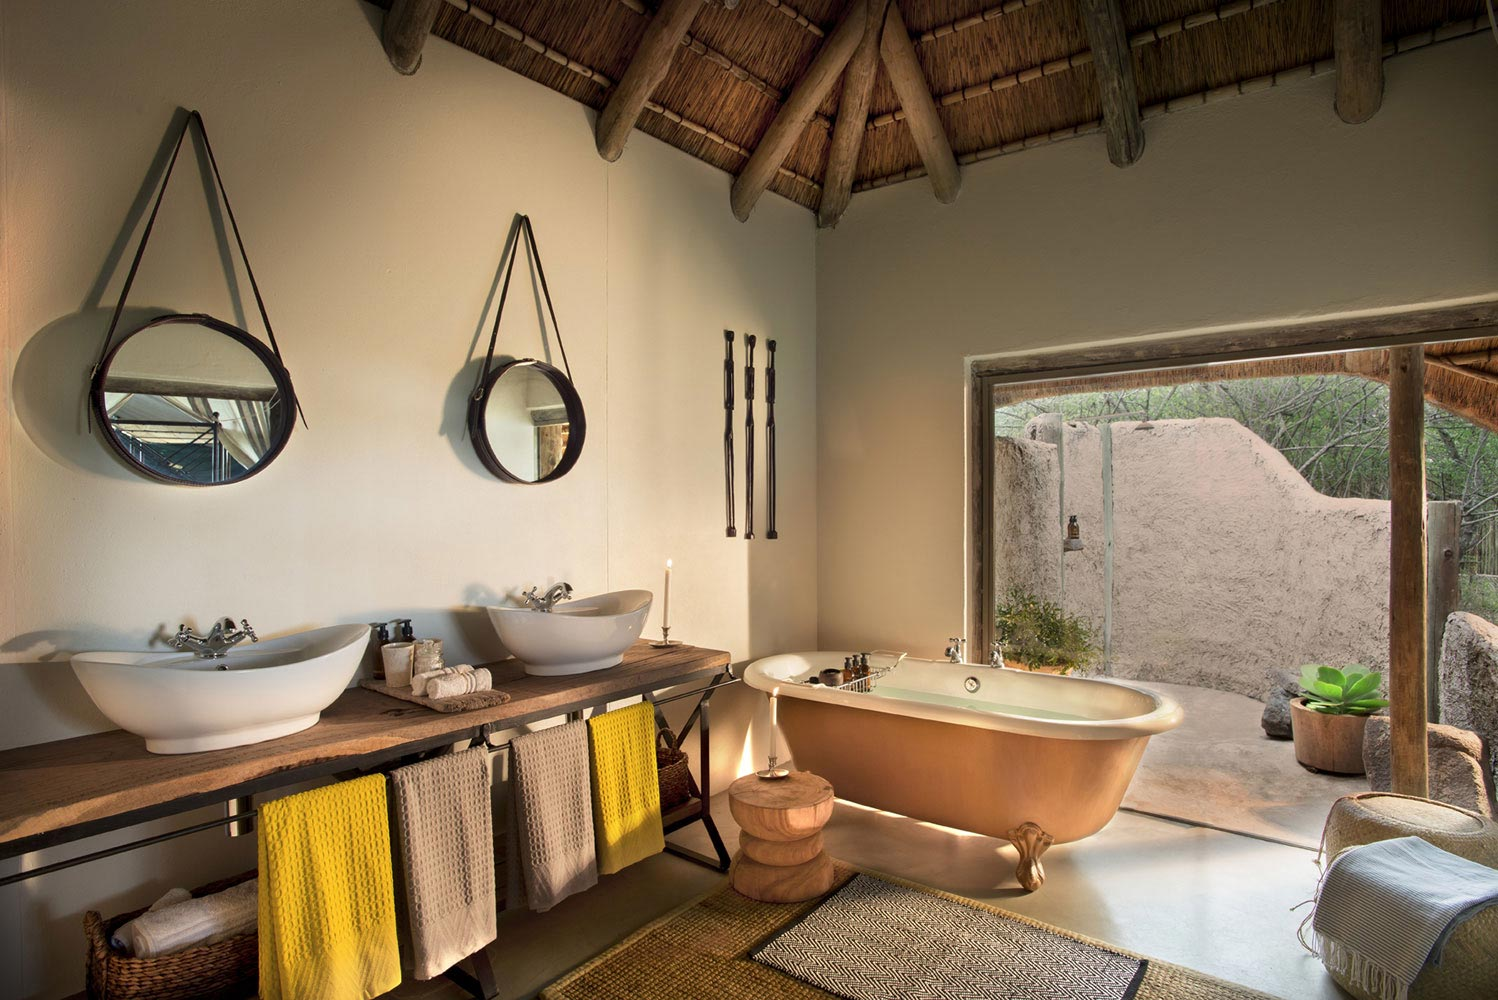 Tanda Tula Safari bathroom